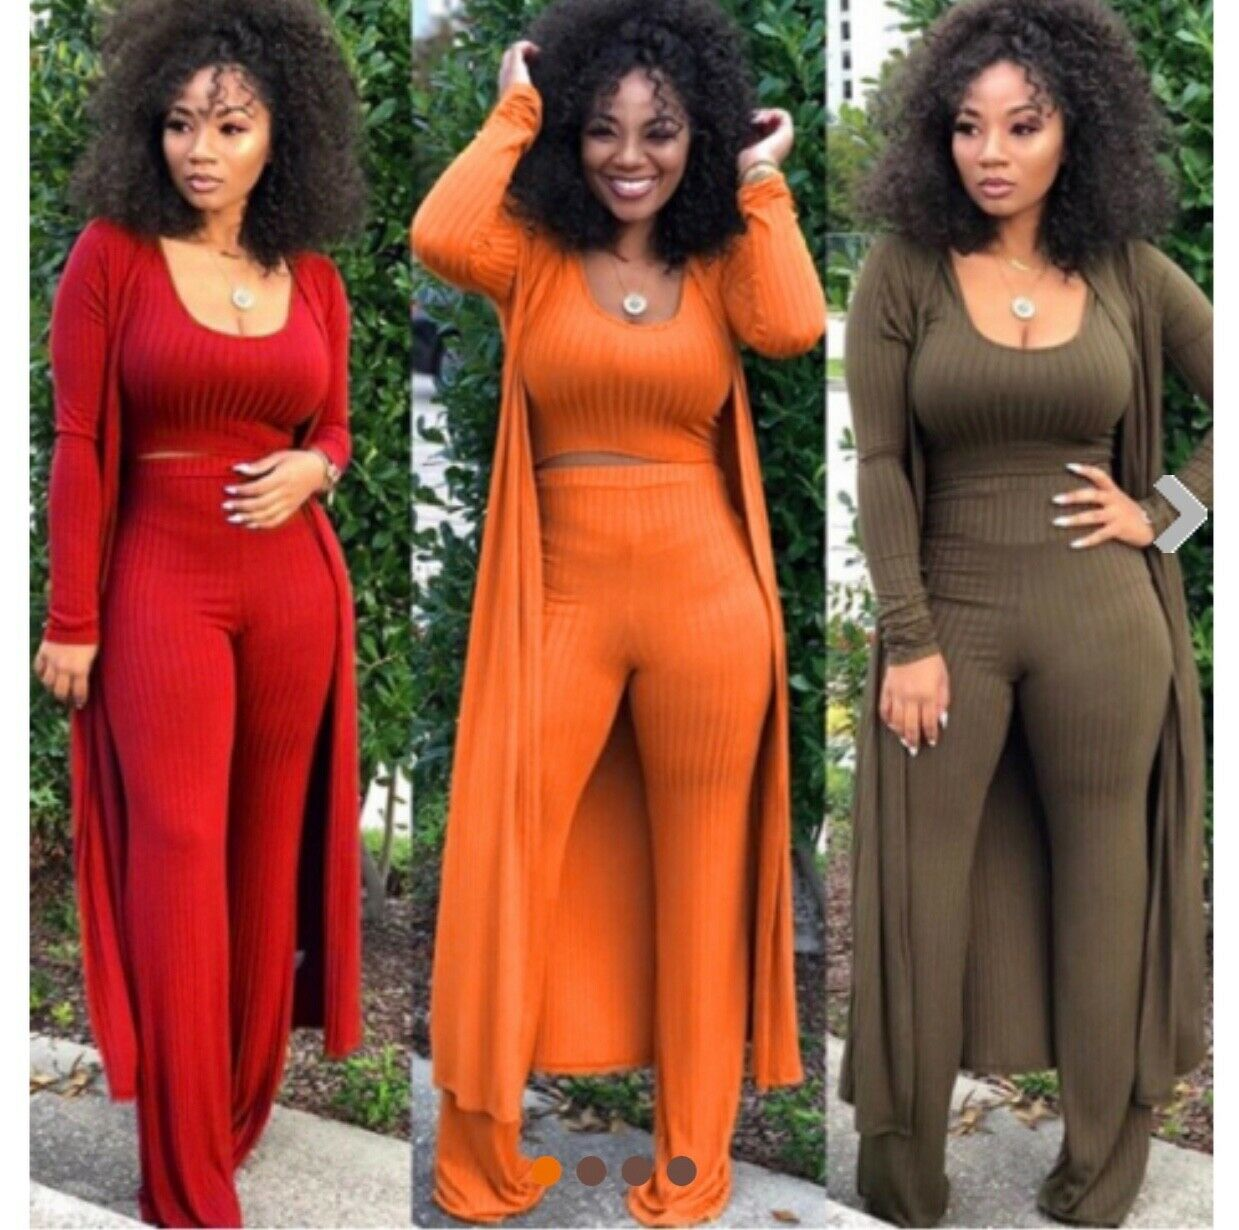 New two piece set S-2xl (Red,Army Green,orange)